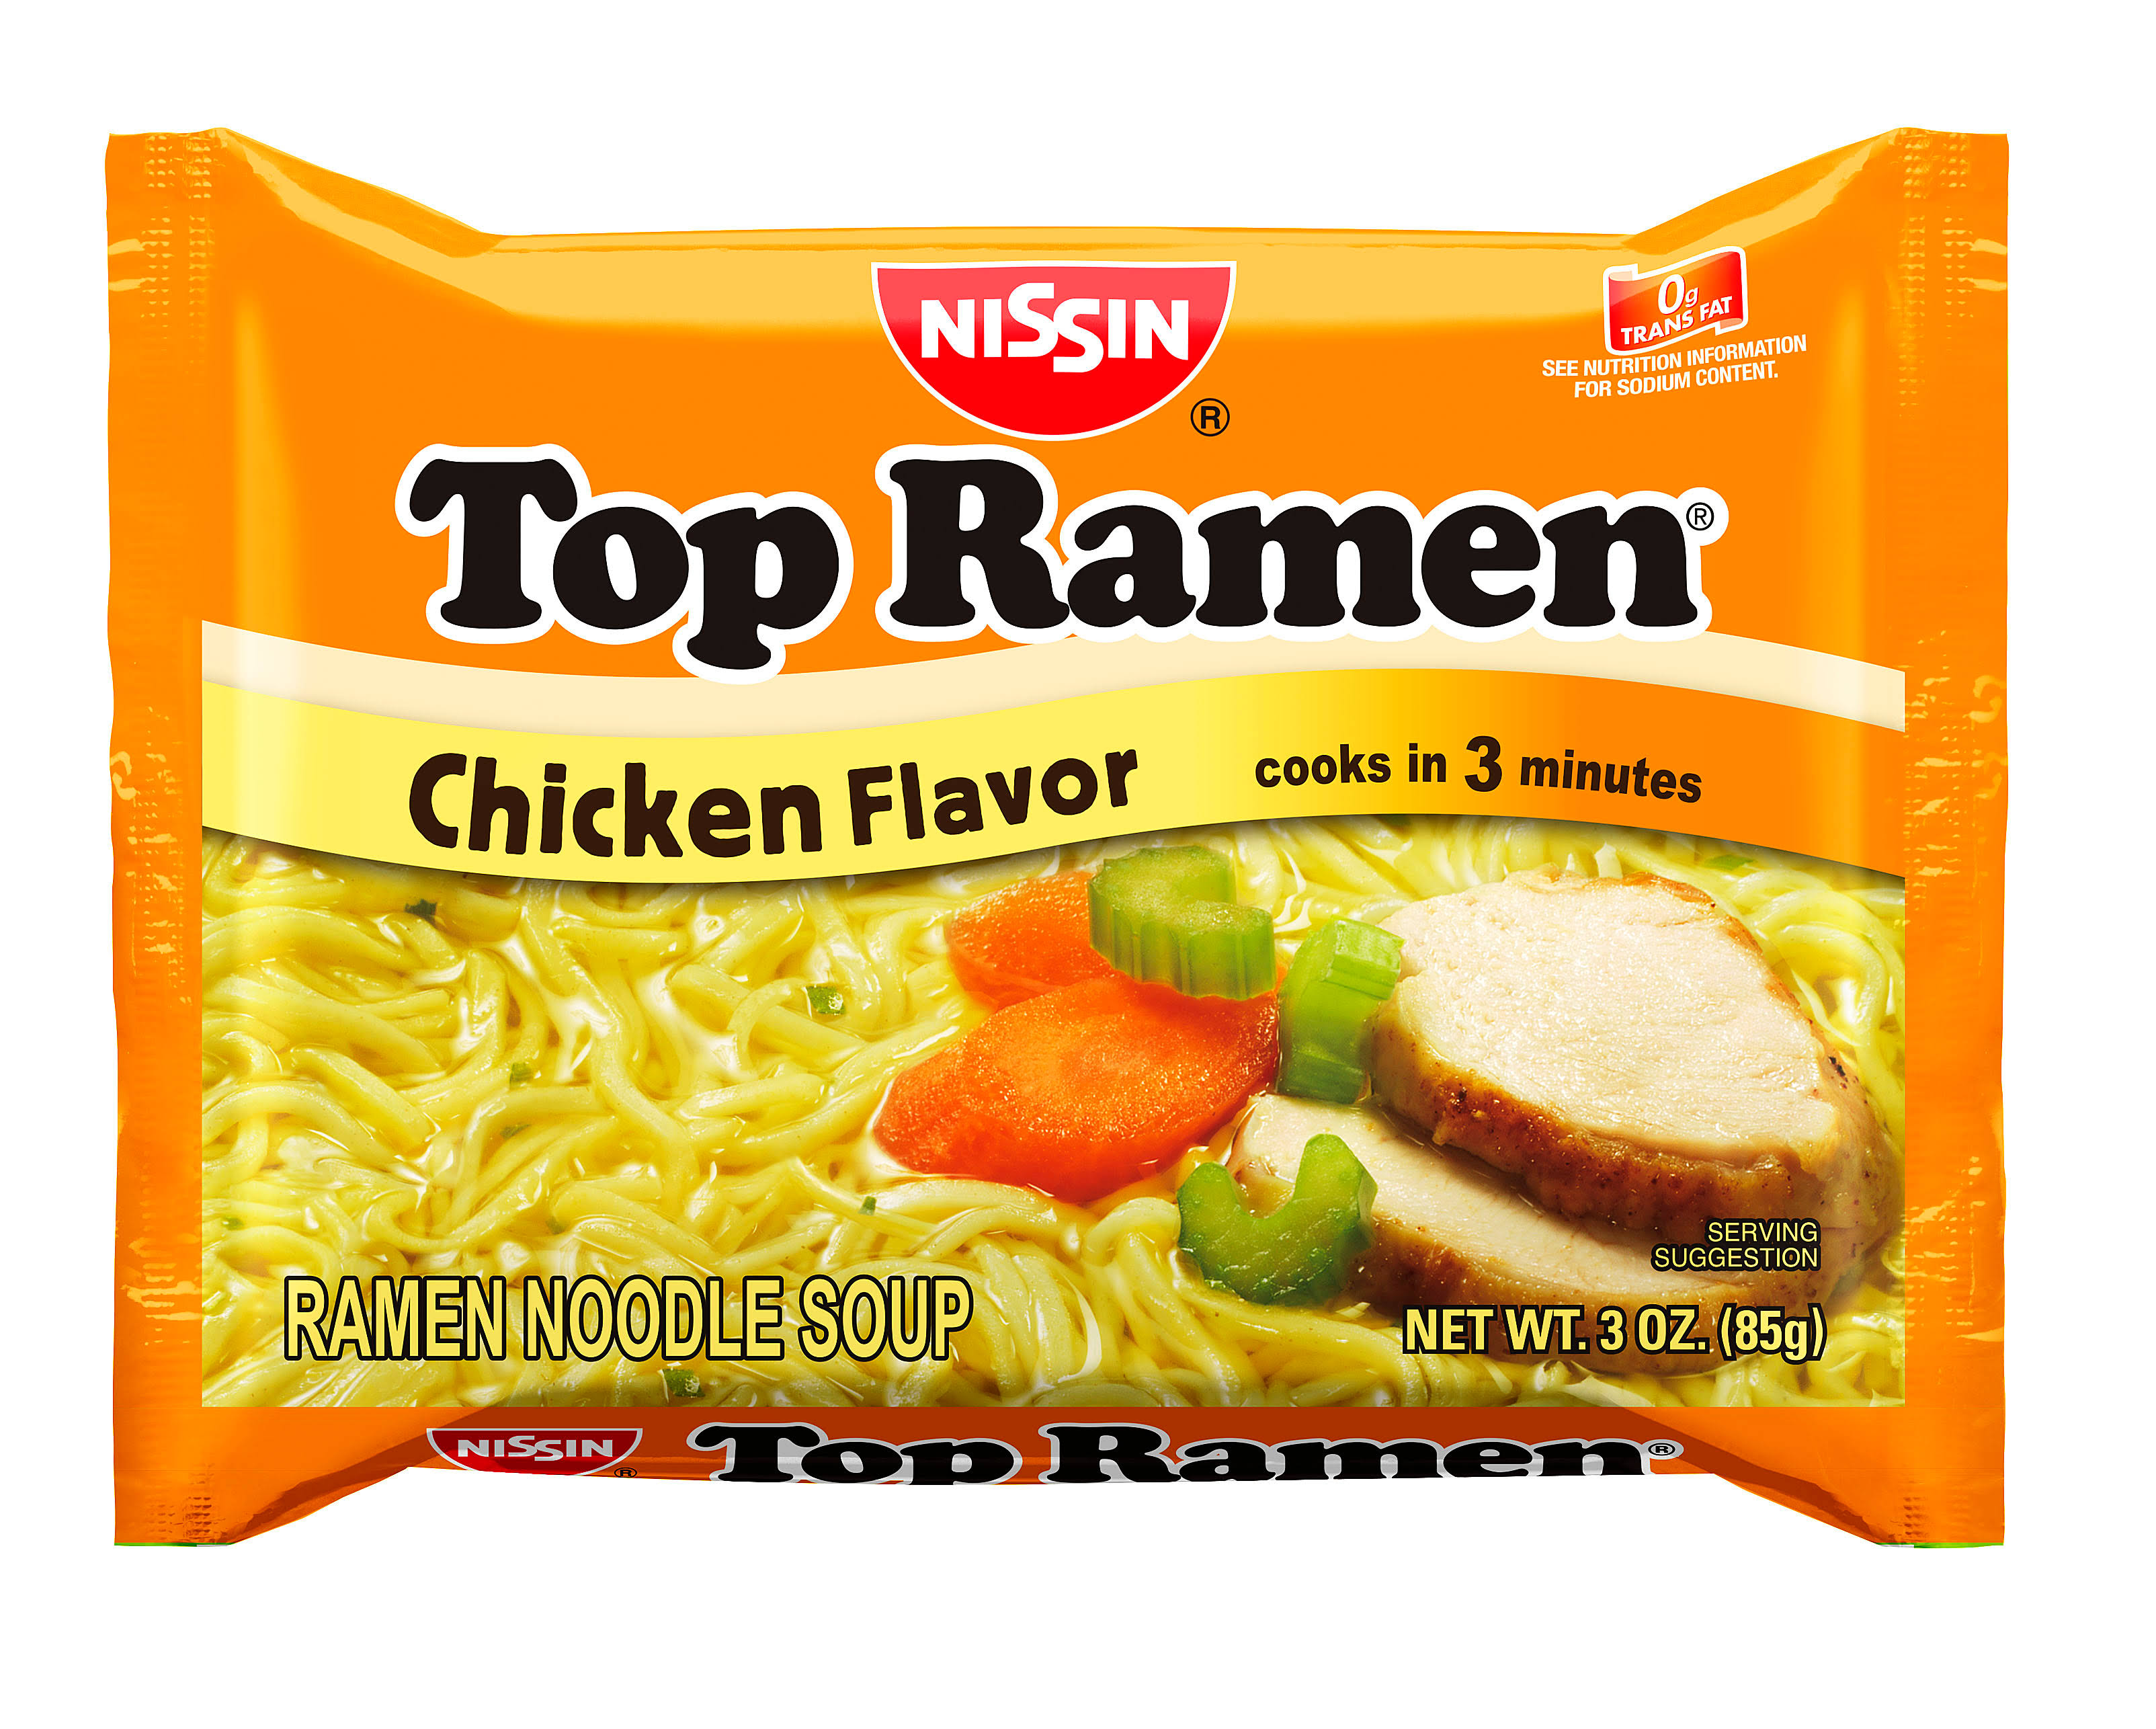 Nissin The Original Top Ramen Noodle Soup - Chicken, 3oz